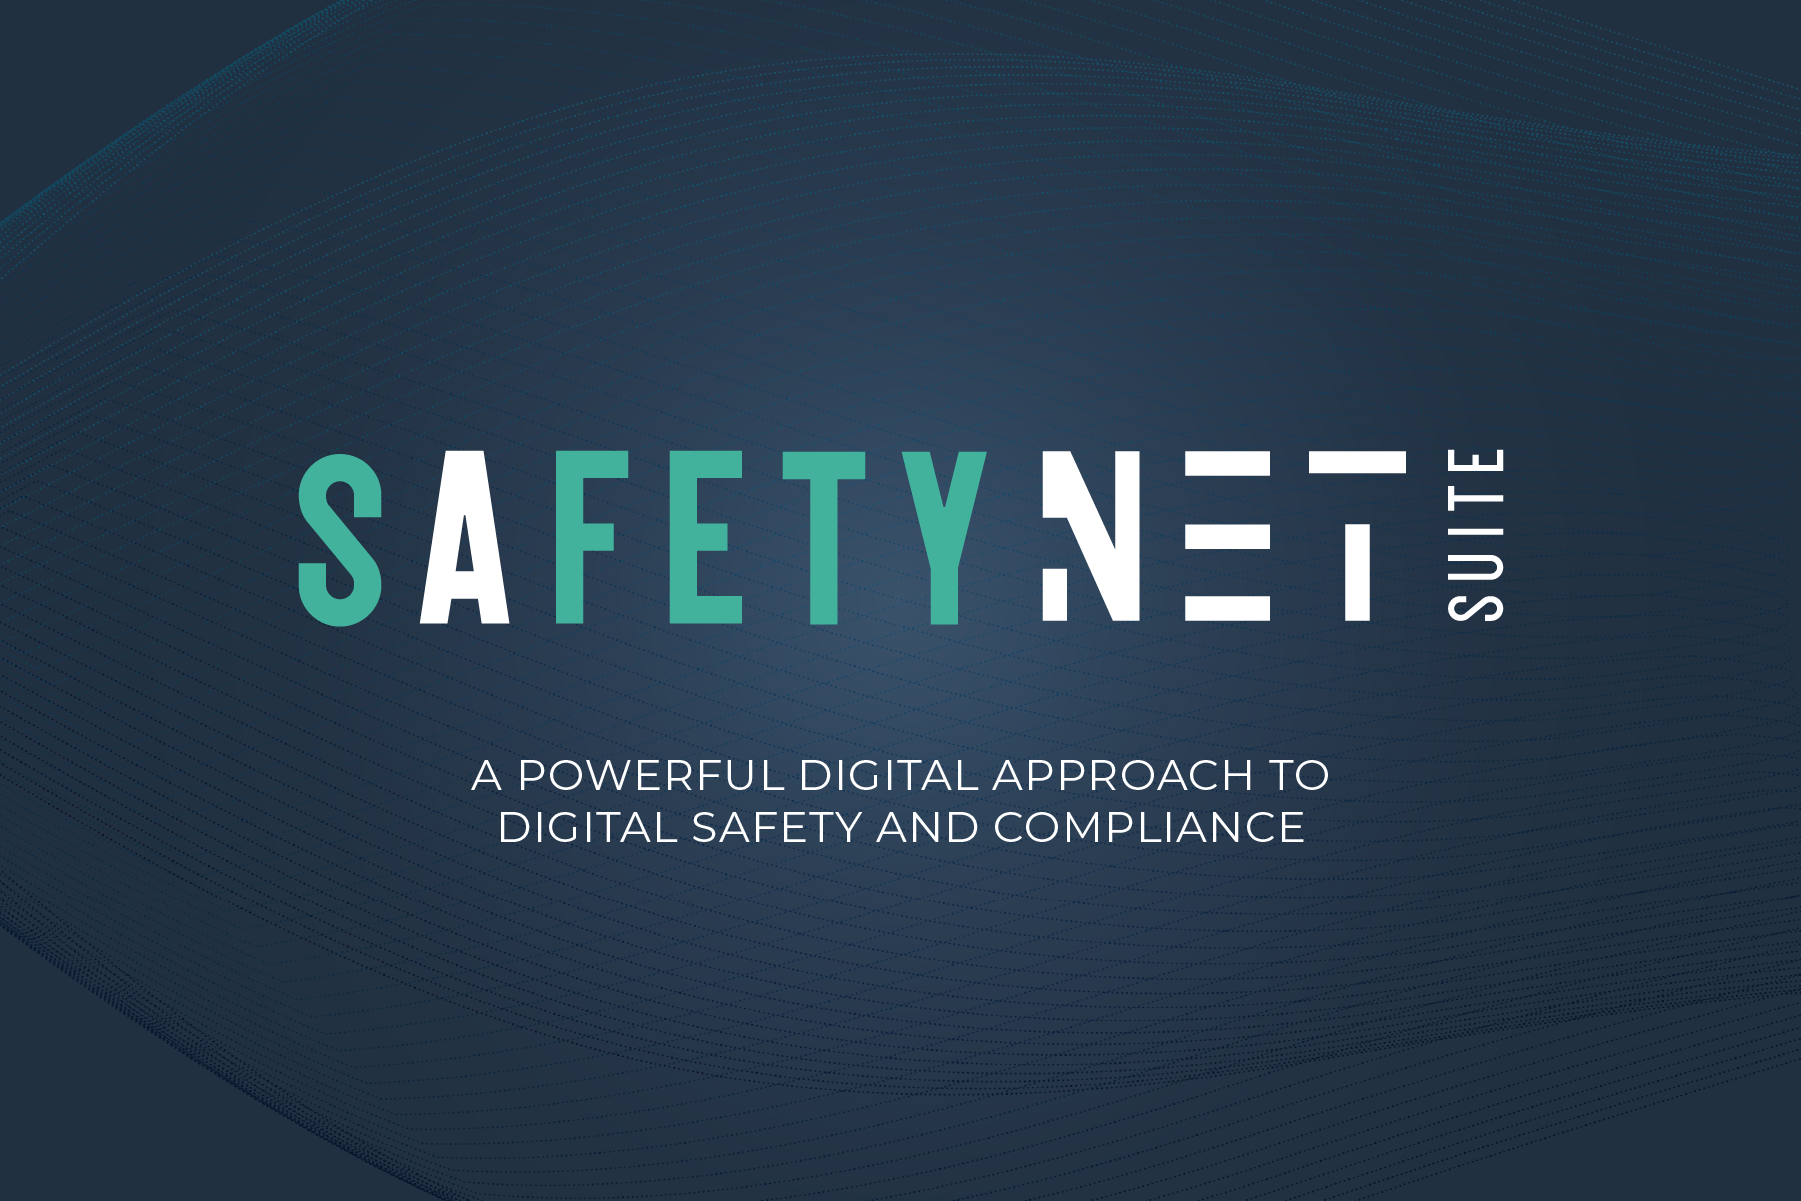 SafetyNet Video